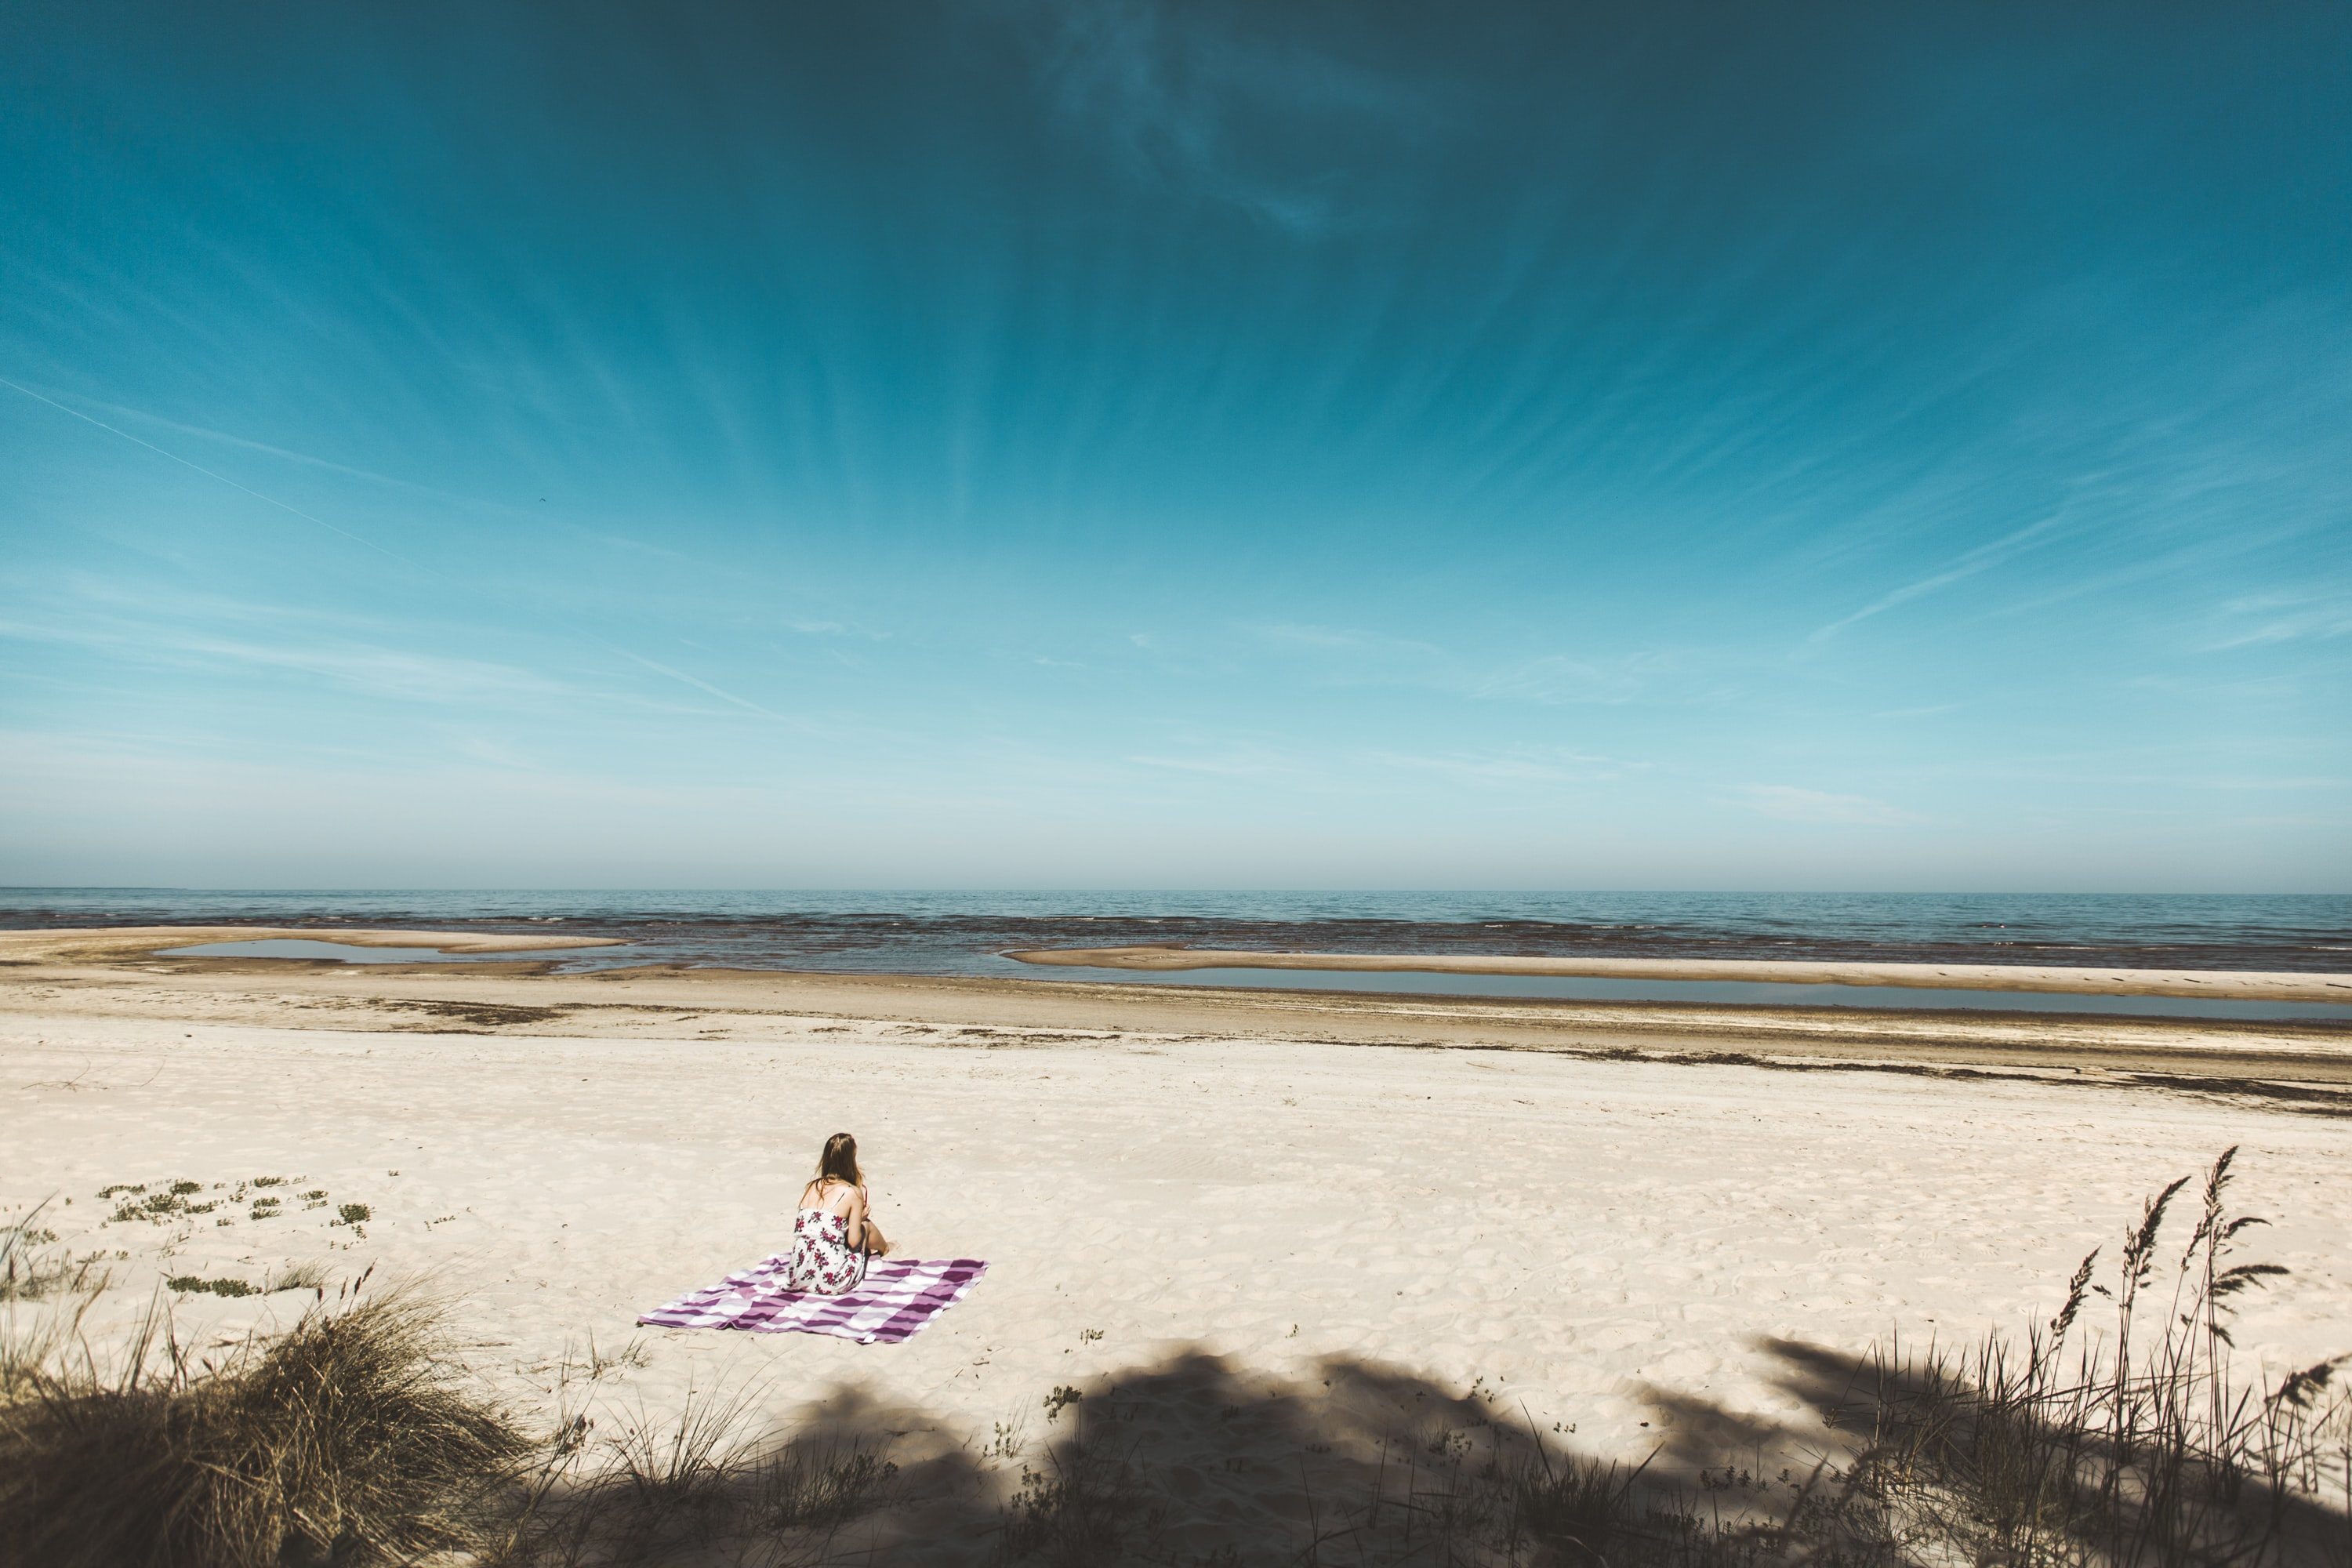 woman sitting on mat placed on gray sand during daytime